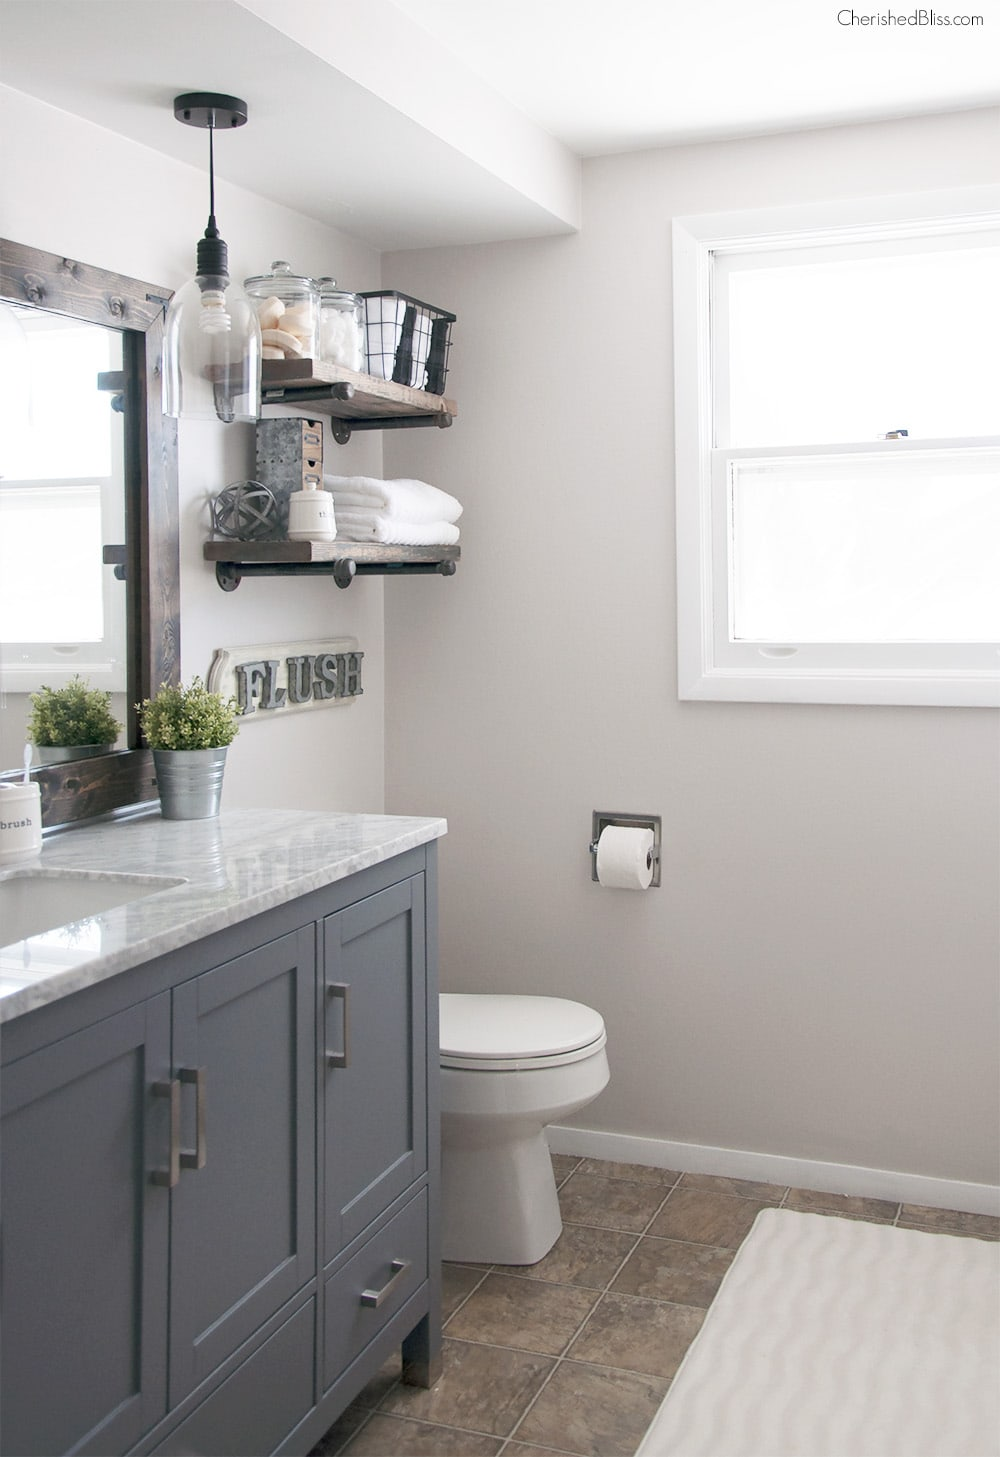 Budget Bathroom Updates Tips To Affordable Bathroom Makeovers - Low cost bathroom makeovers